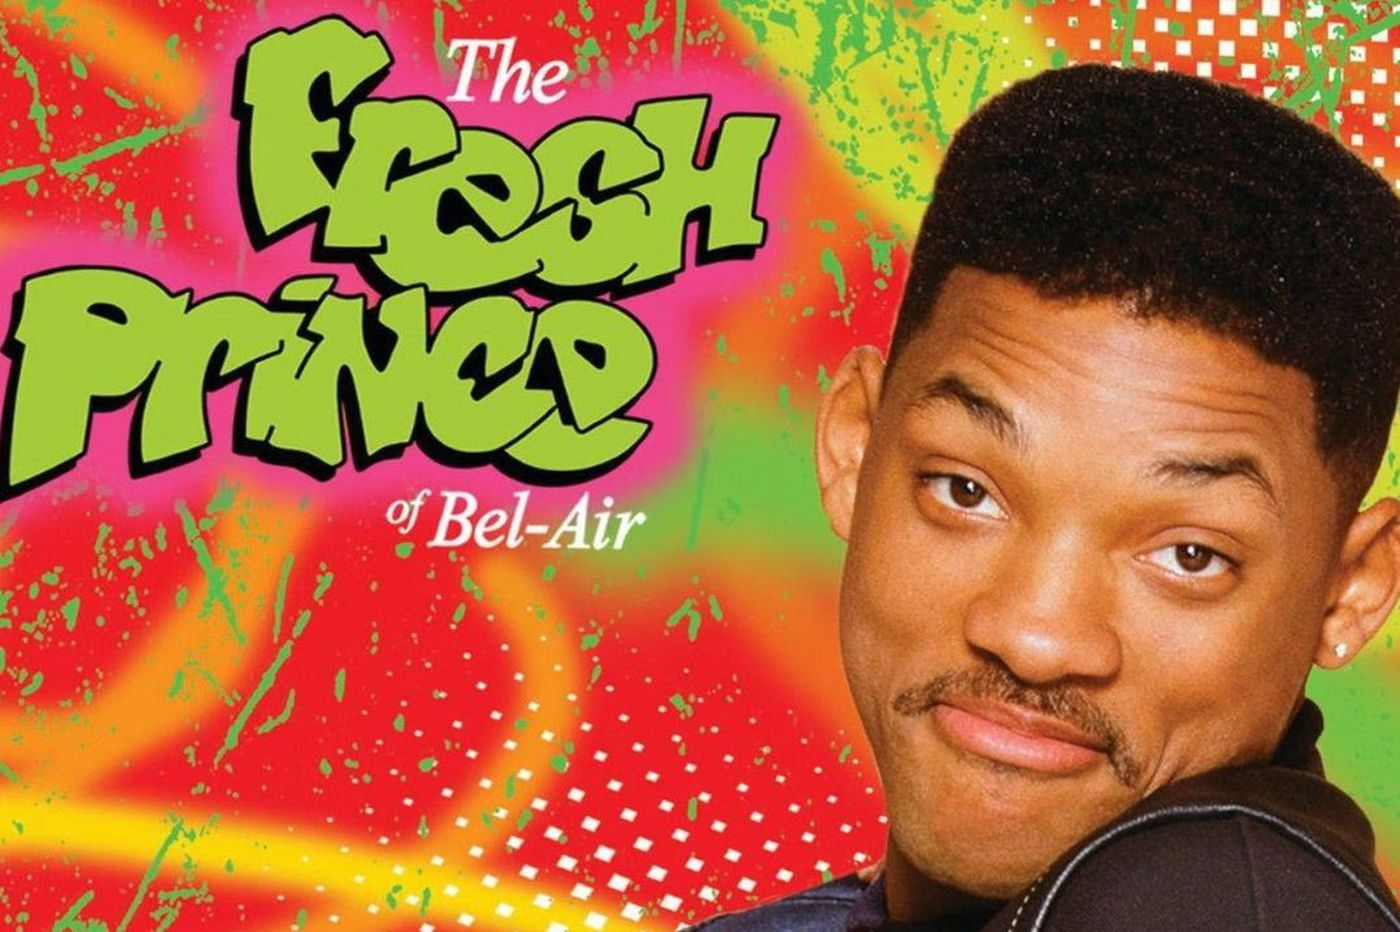 BA4LHLYTIVHMVLP4ZY3UMQRY2E 20 Things You May Not Have Realised About The Fresh Prince Of Bel-Air